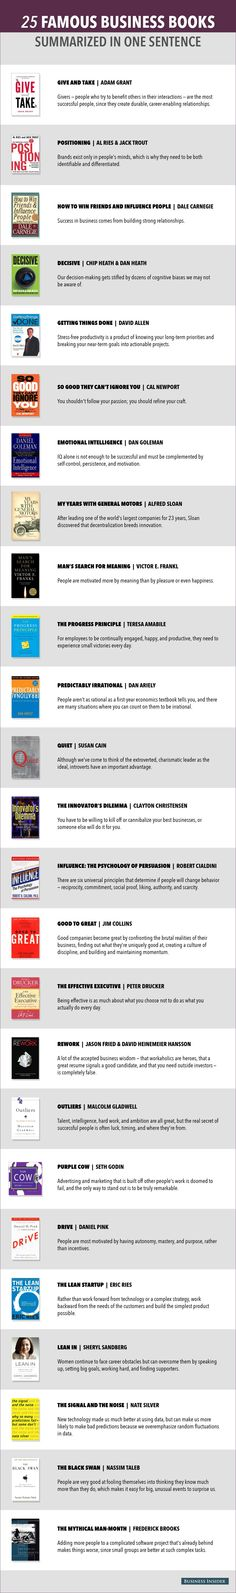 25 Famous Business Books Summarized in One Sentence